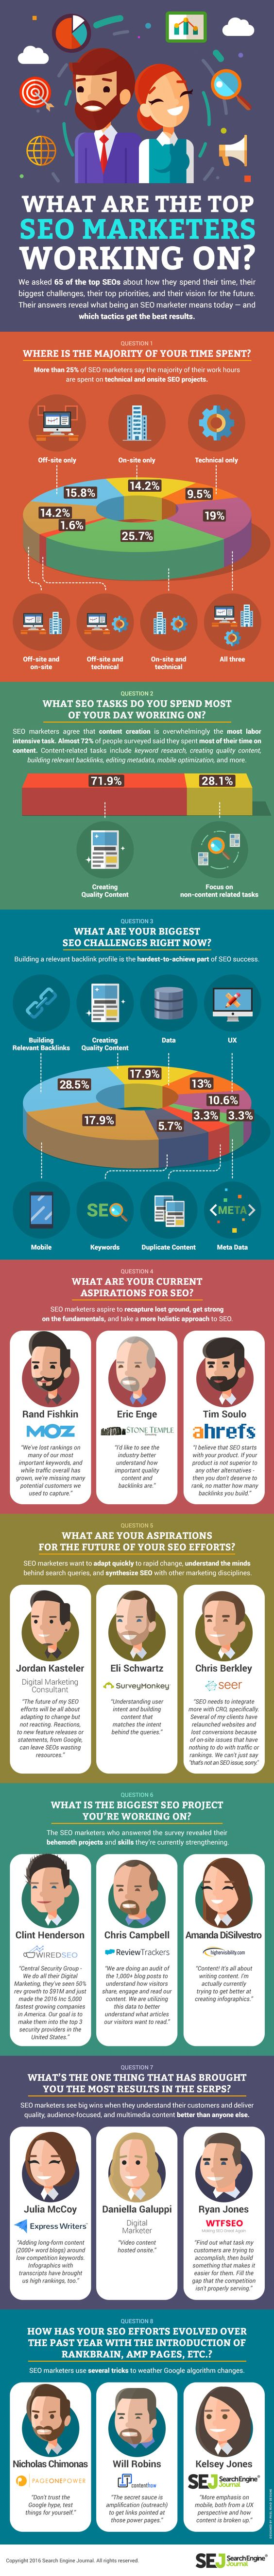 What Gets The Most #Results for Top #SEOs? [#Infographic]